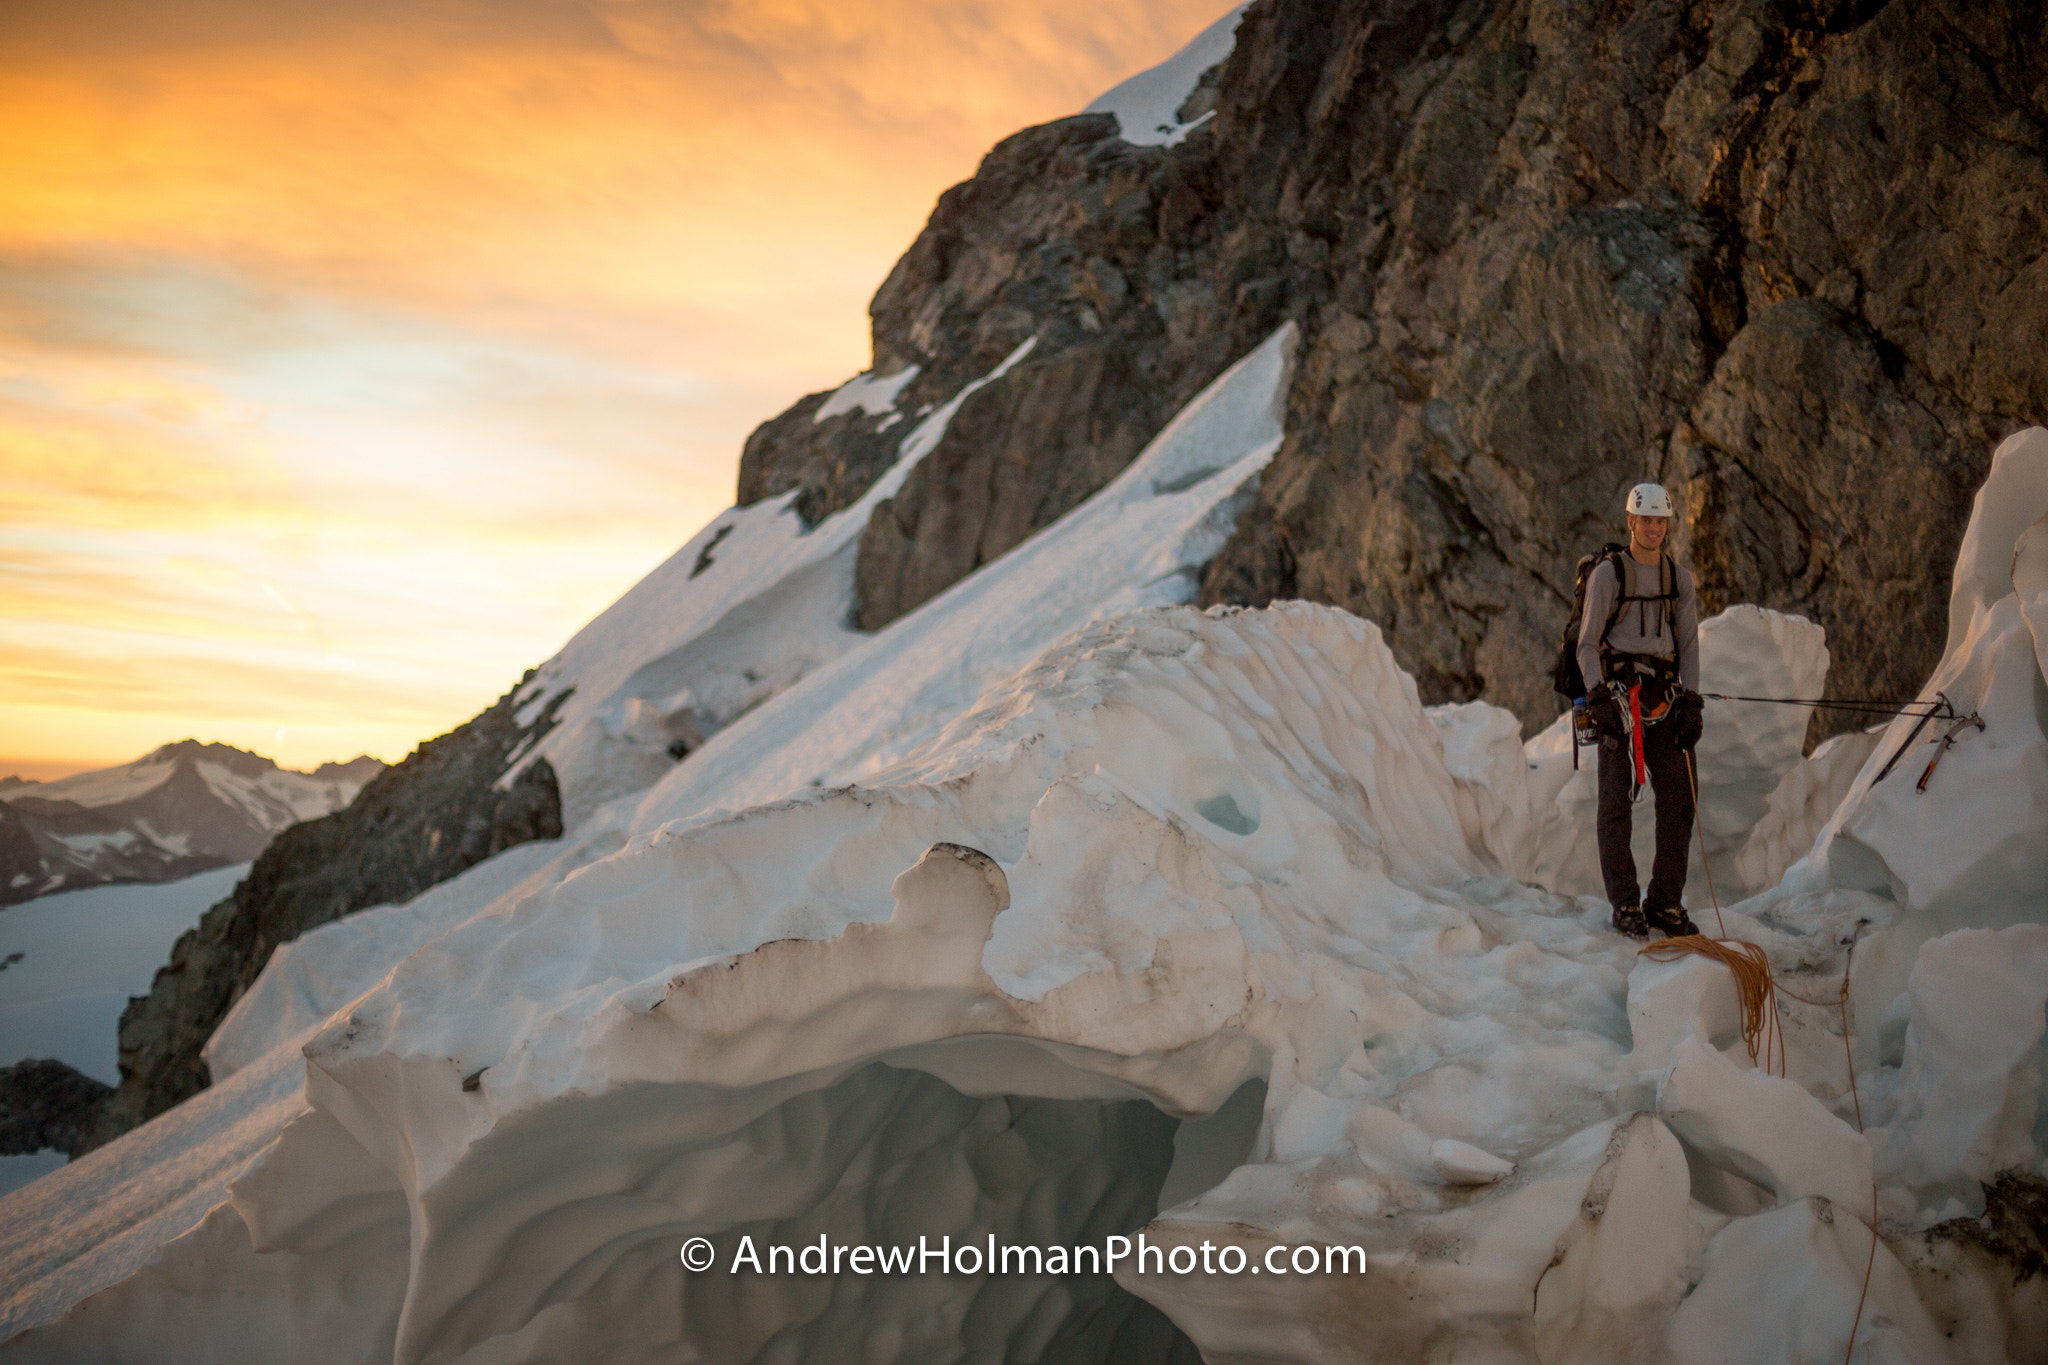 Photograph Crevasse Belay on Mt Shuksan by Andrew Holman on 500px